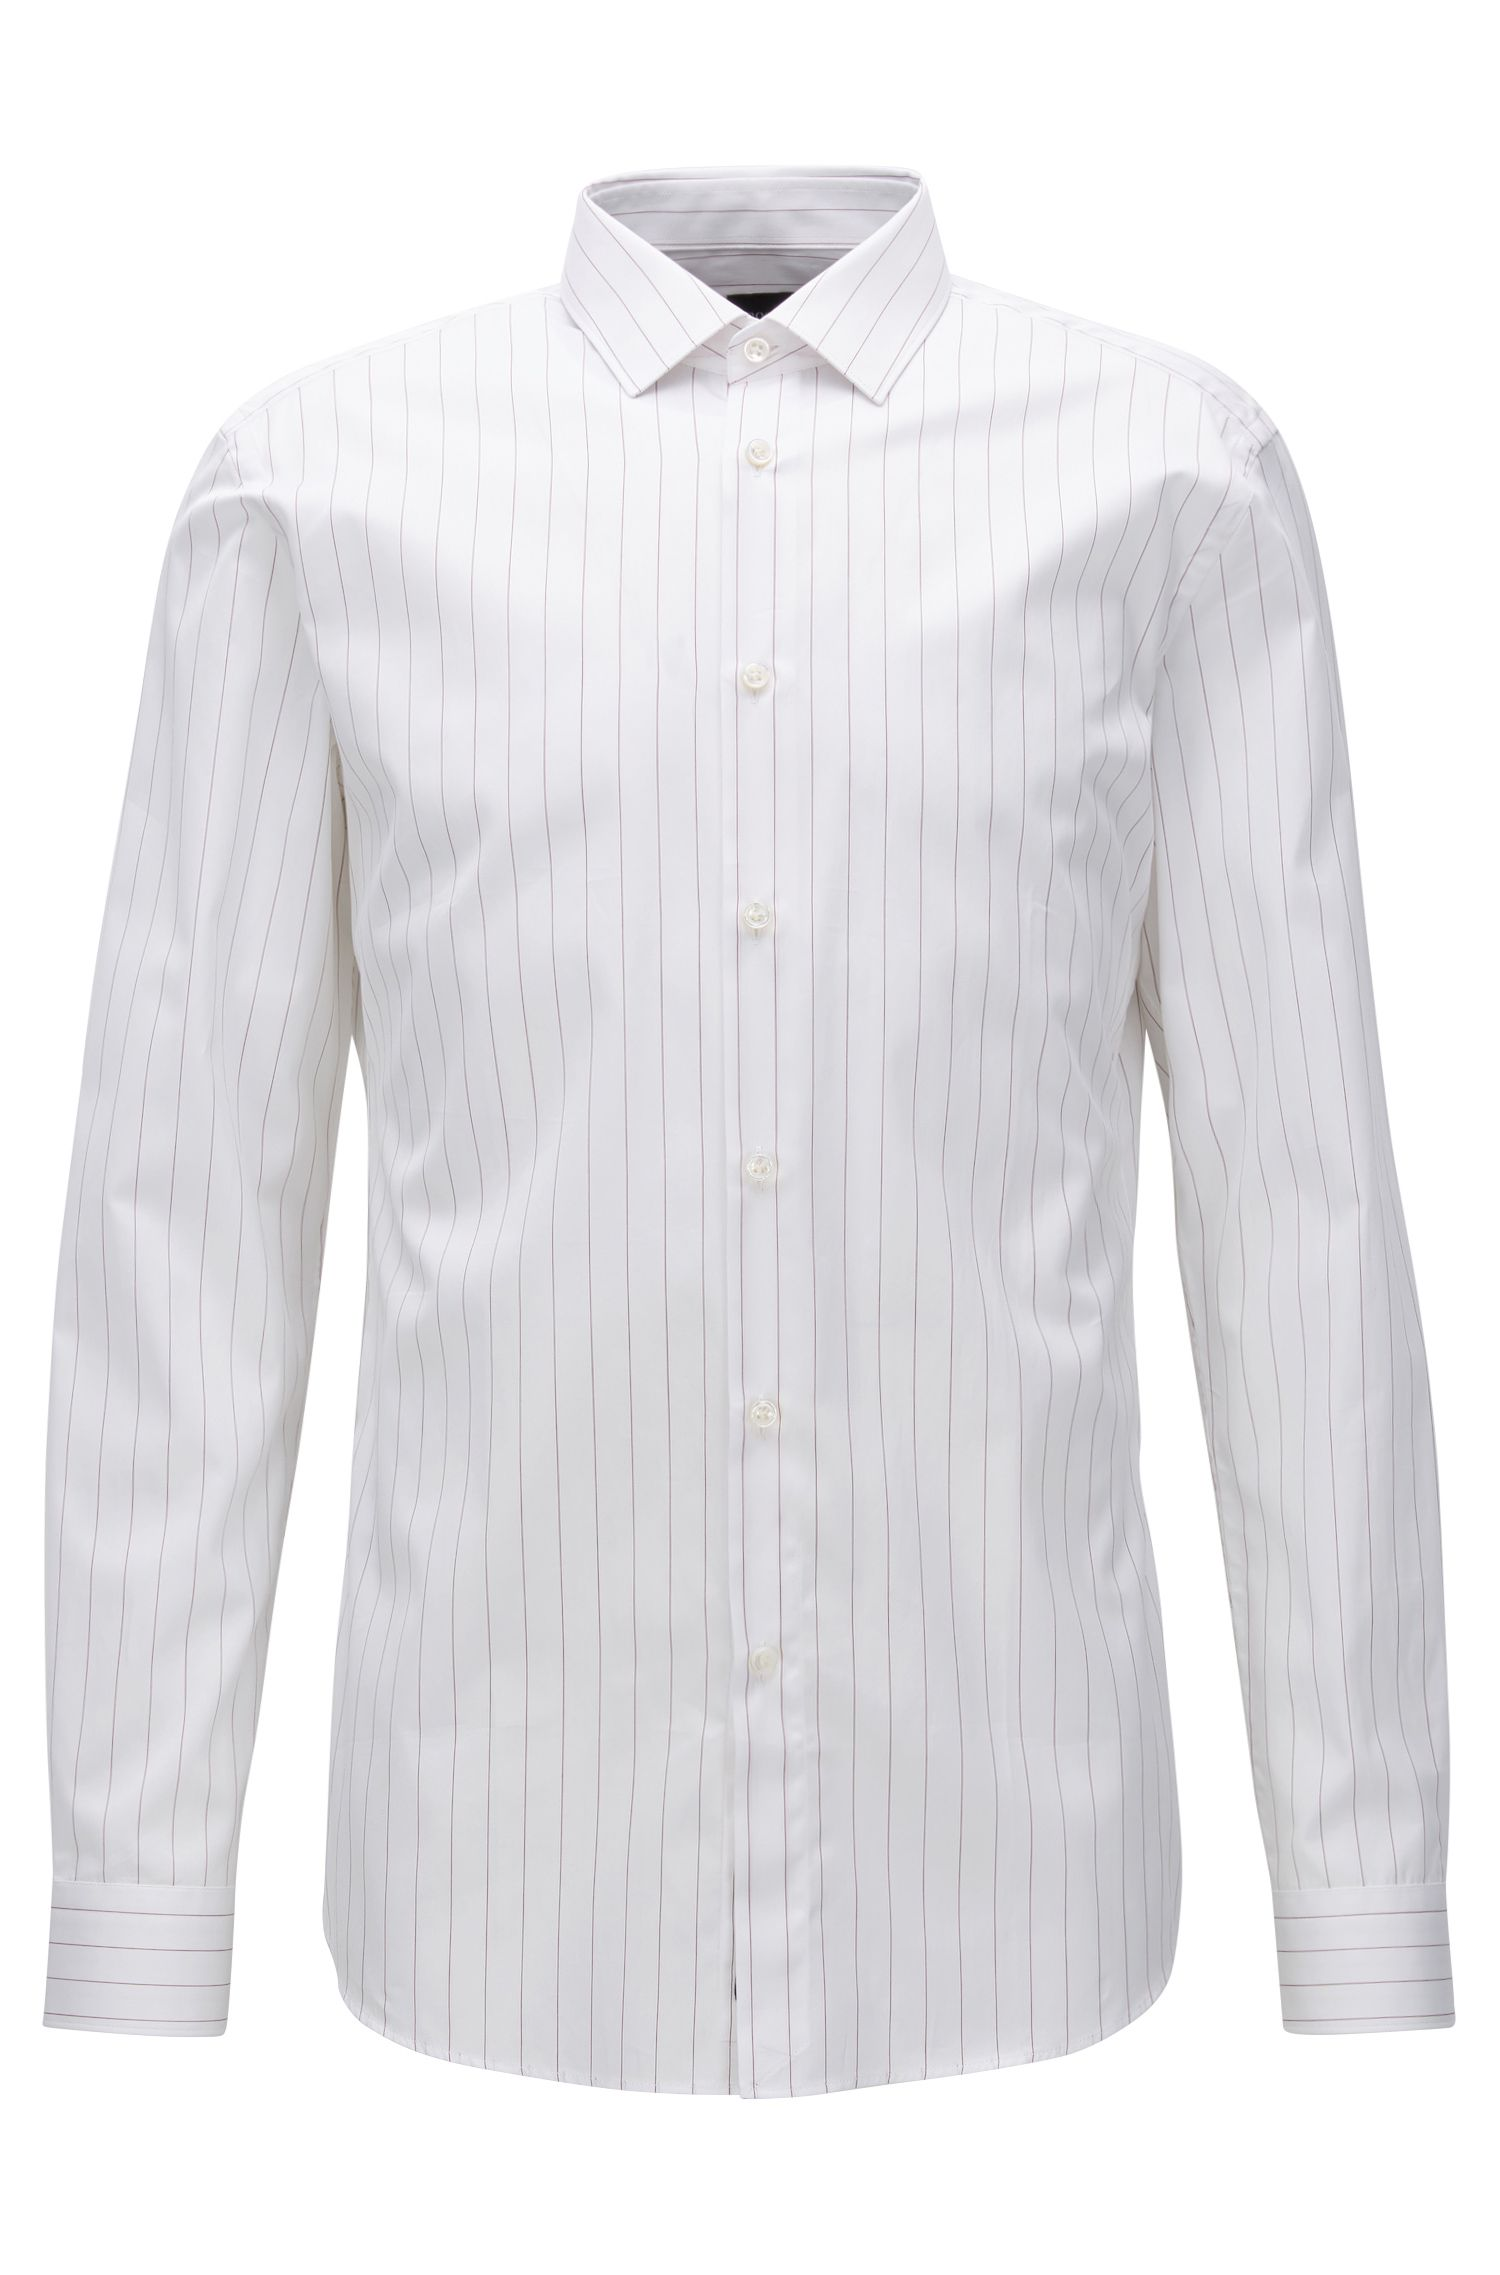 Slim-fit shirt in pinstripe cotton poplin